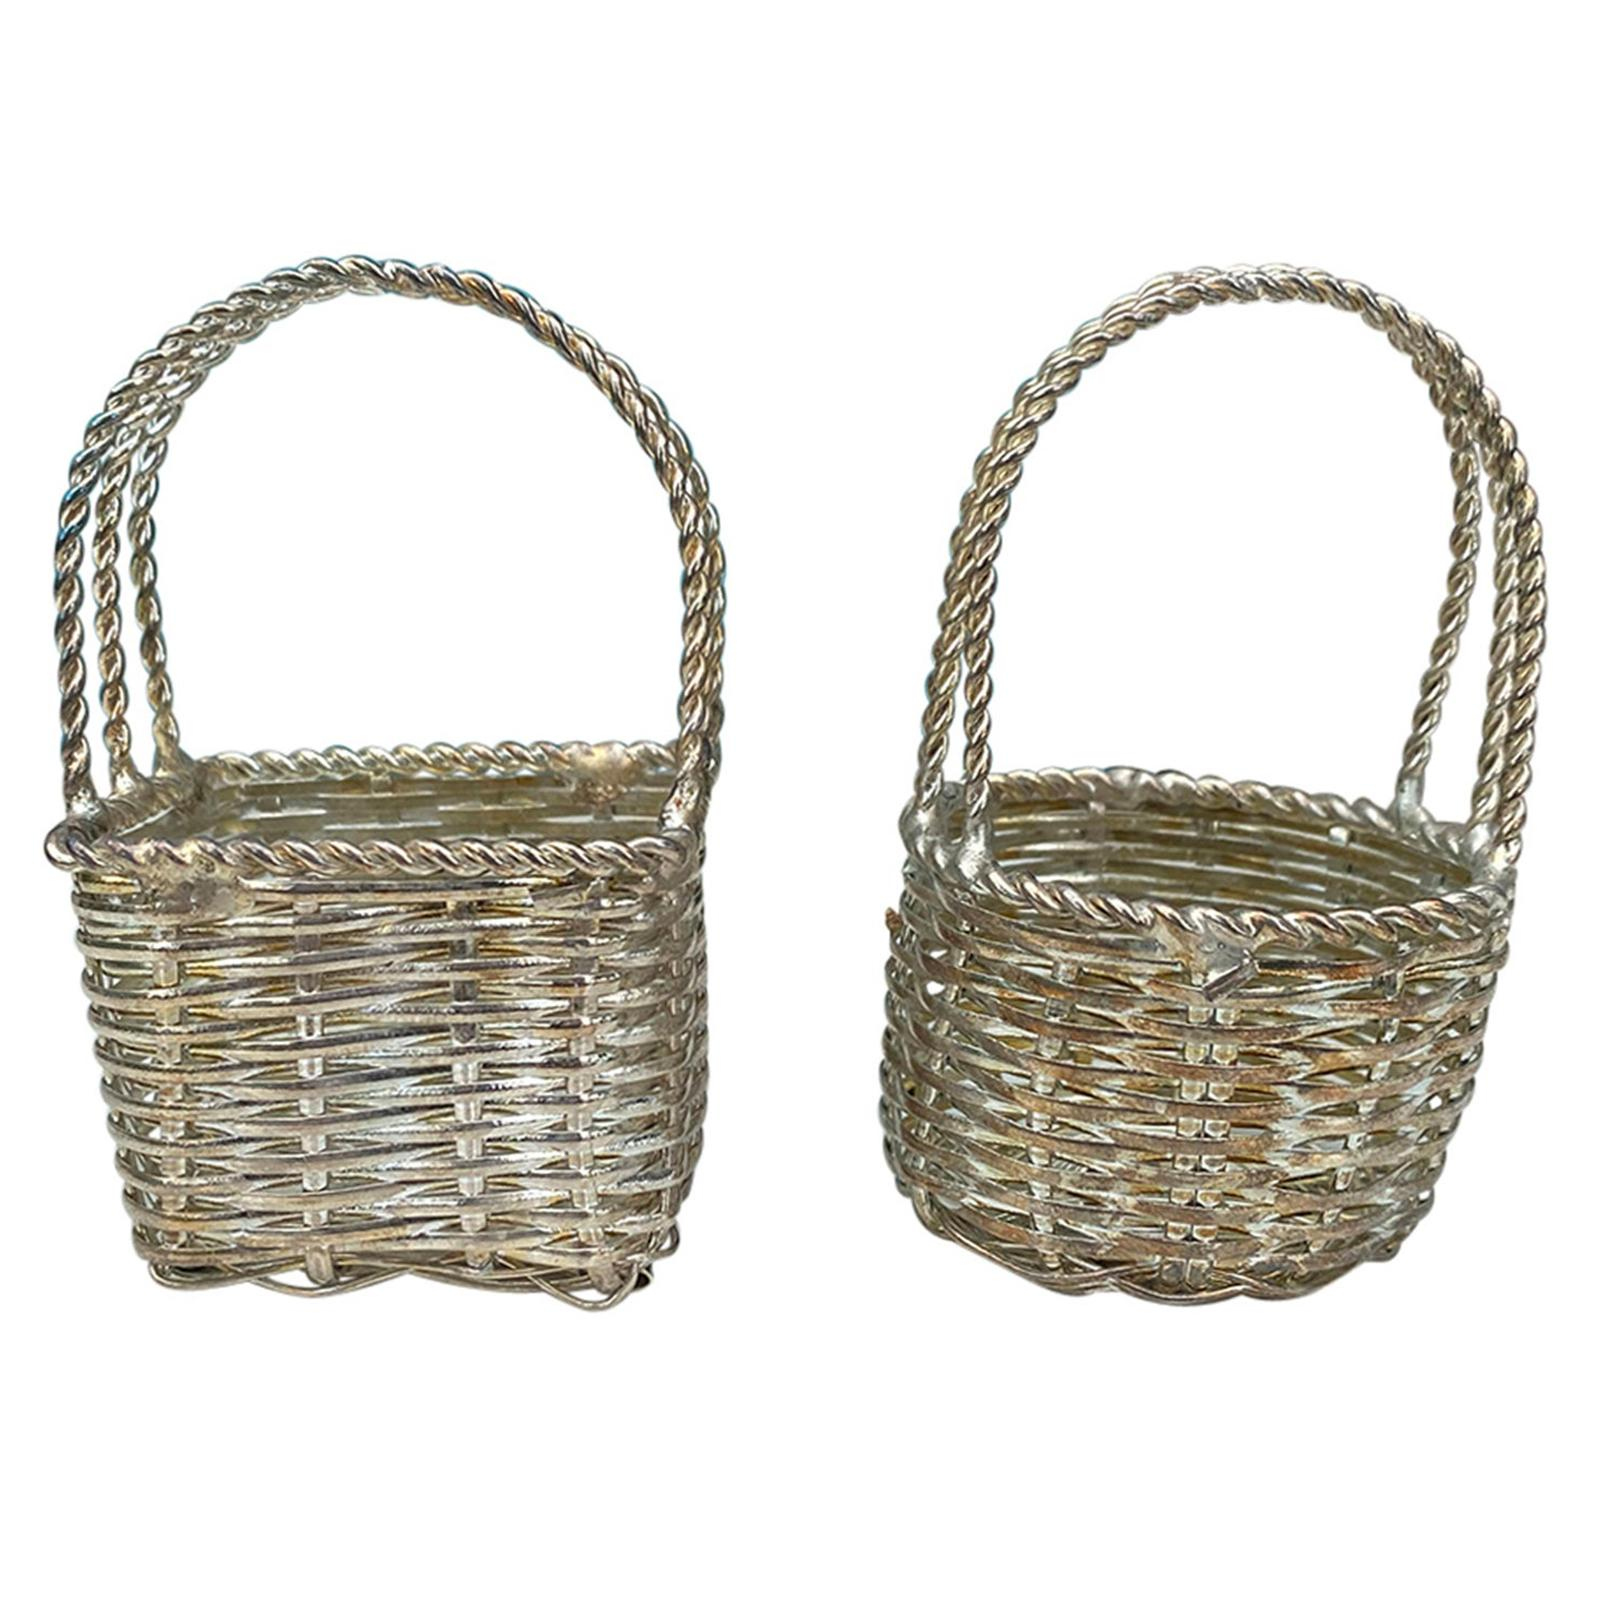 Two Miniature 20th Century Woven Silvered Baskets, Unmarked